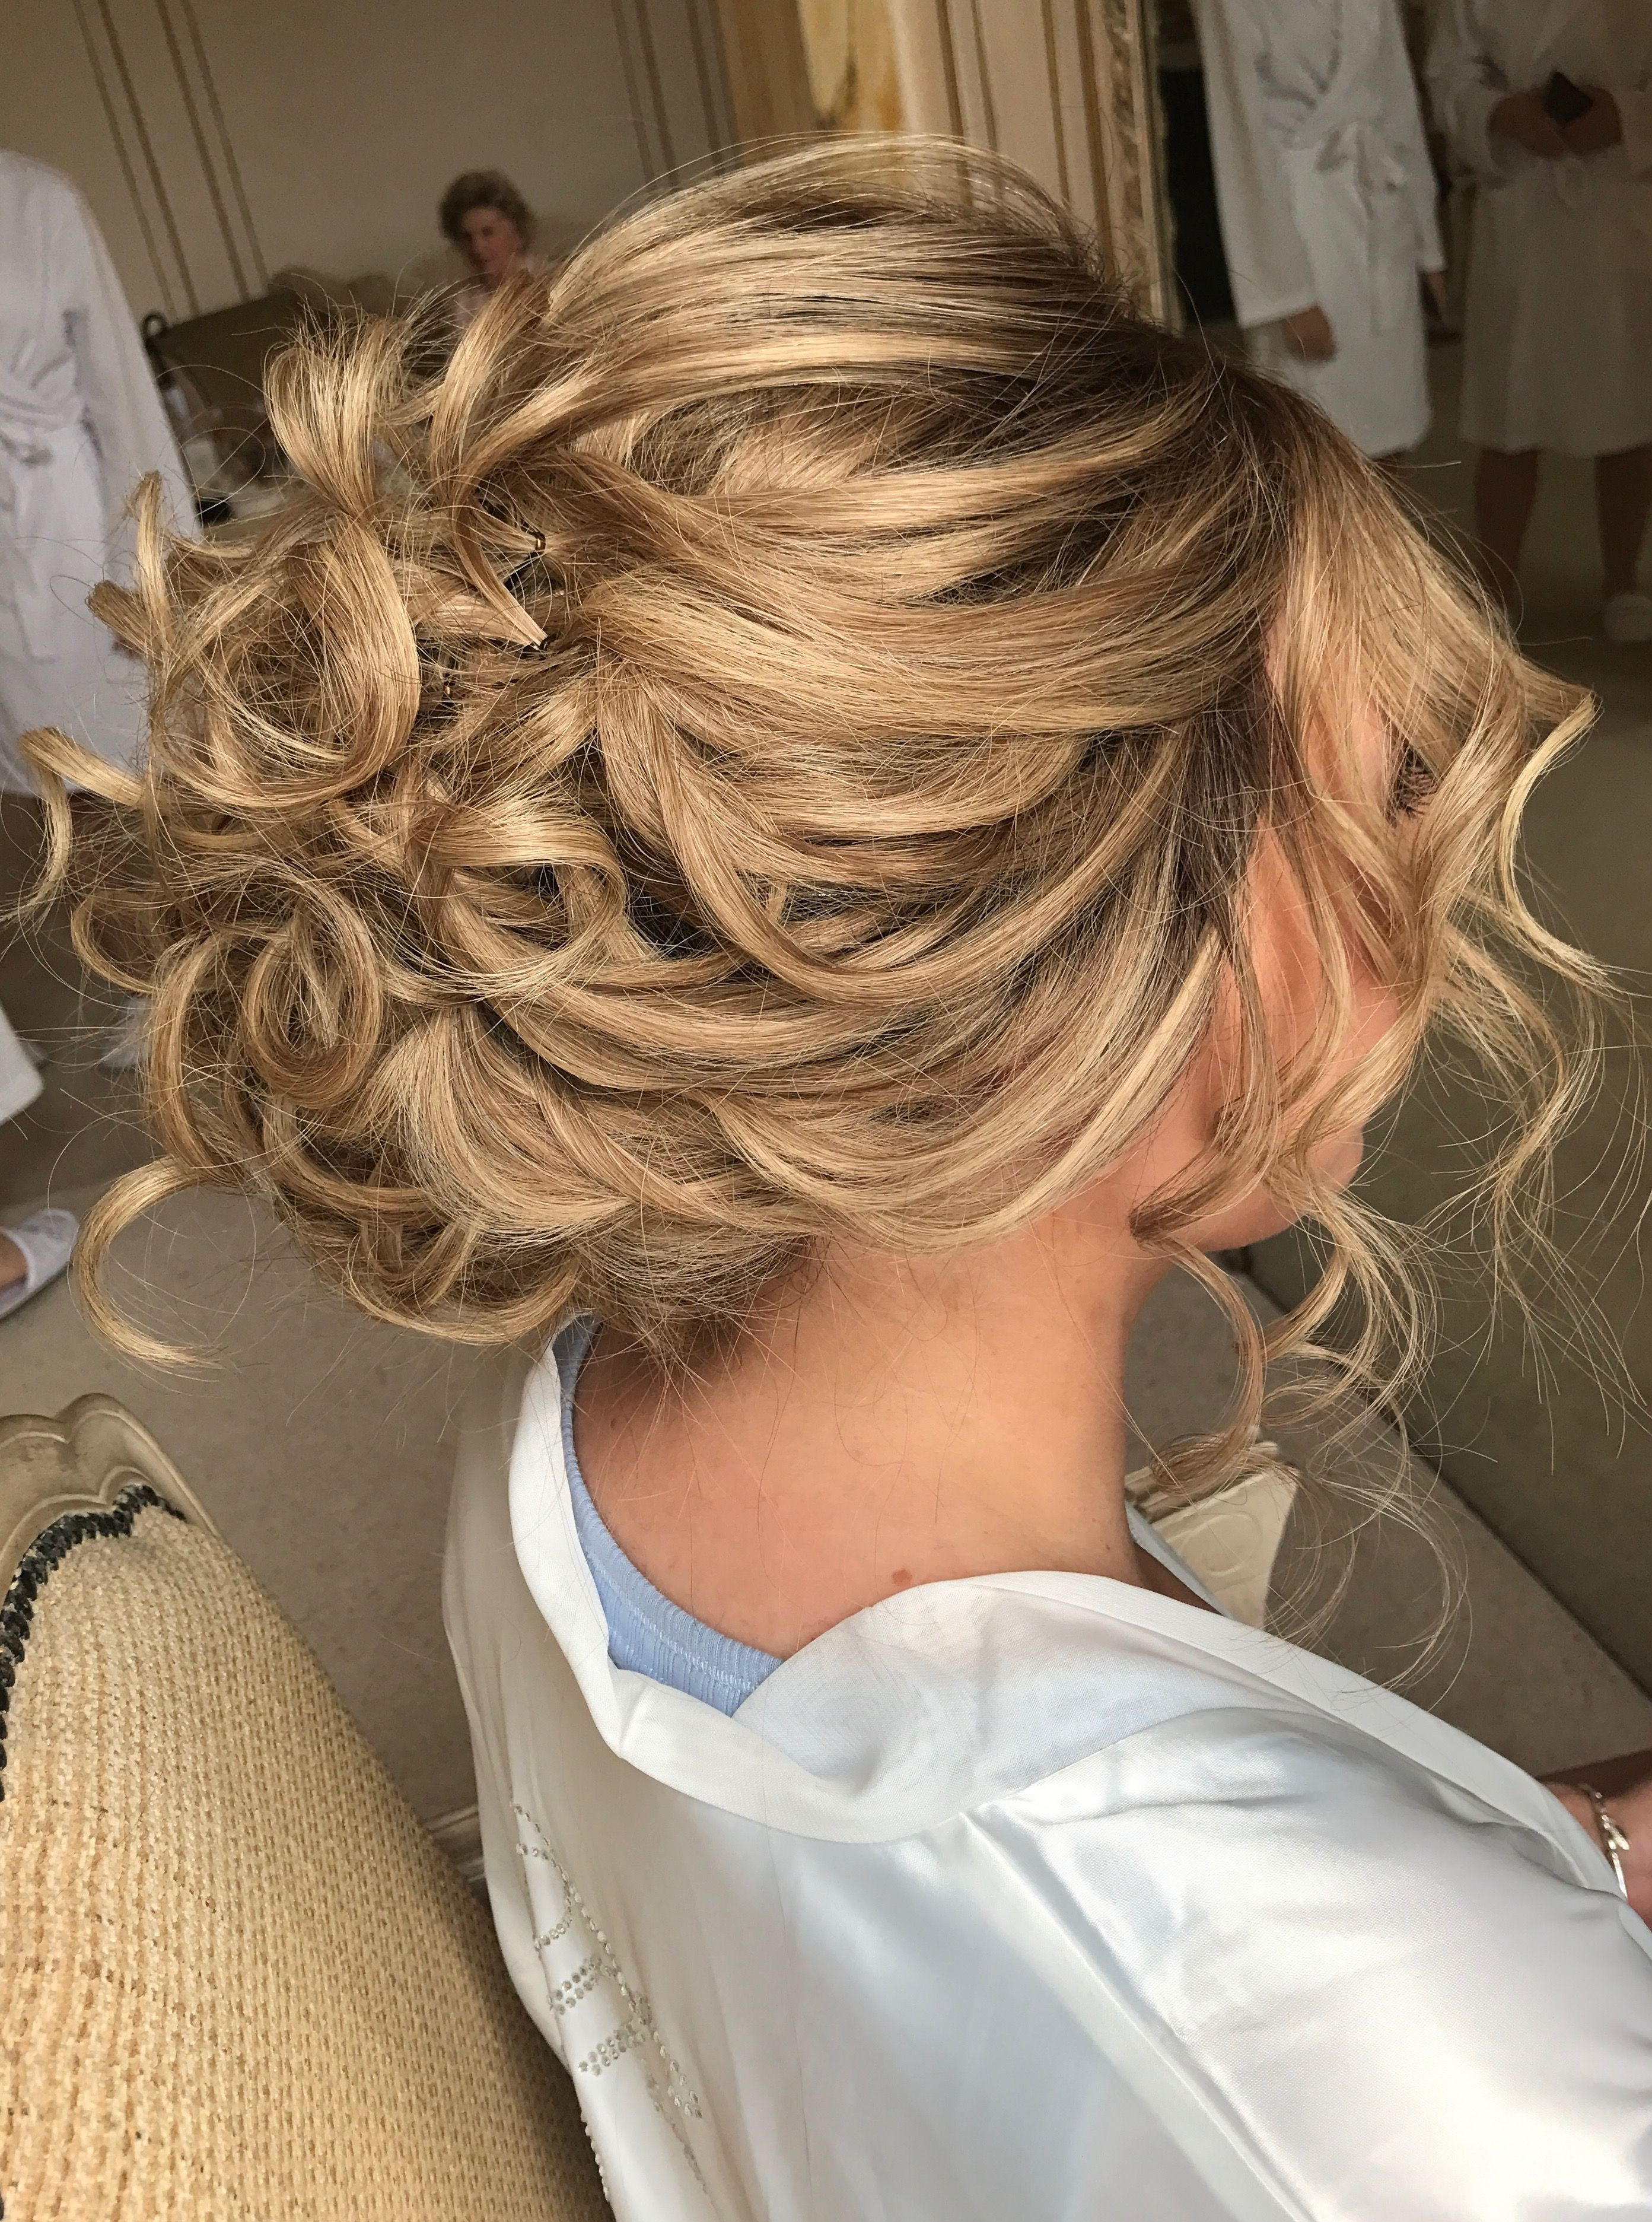 Romantic And Beautiful Wedding Hair And Makeup Flower Girl Hairstyles Wedding Hairstyles